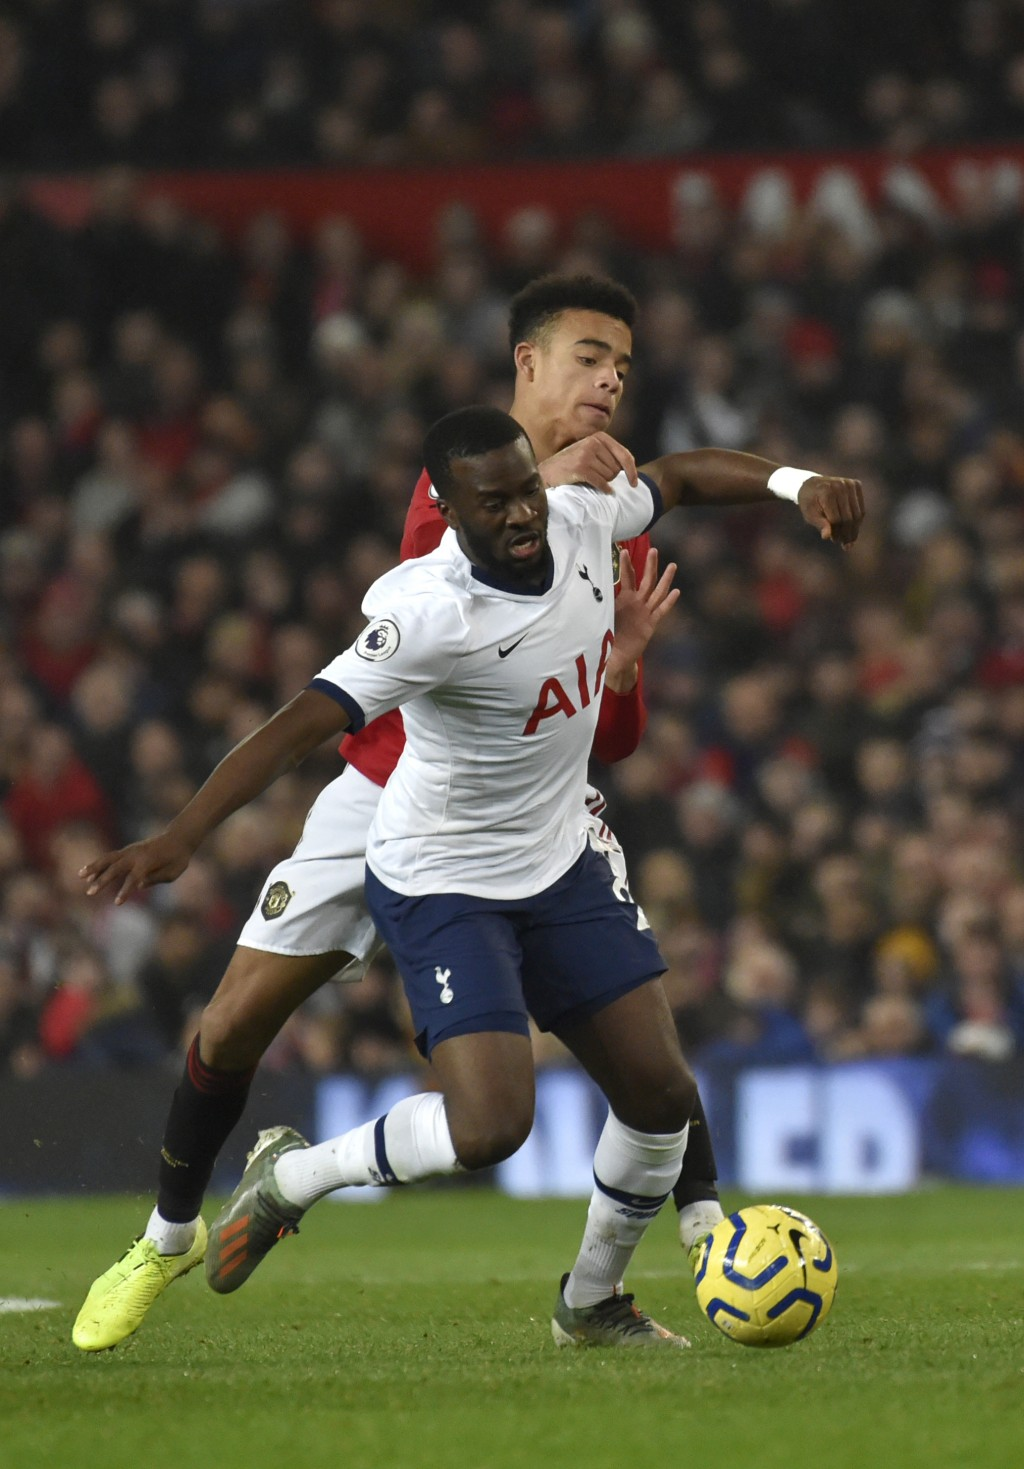 Tottenham's Tanguy Ndombele, left, and Manchester United's Mason Greenwood challenge for the ball during the English Premier League soccer match betwe...